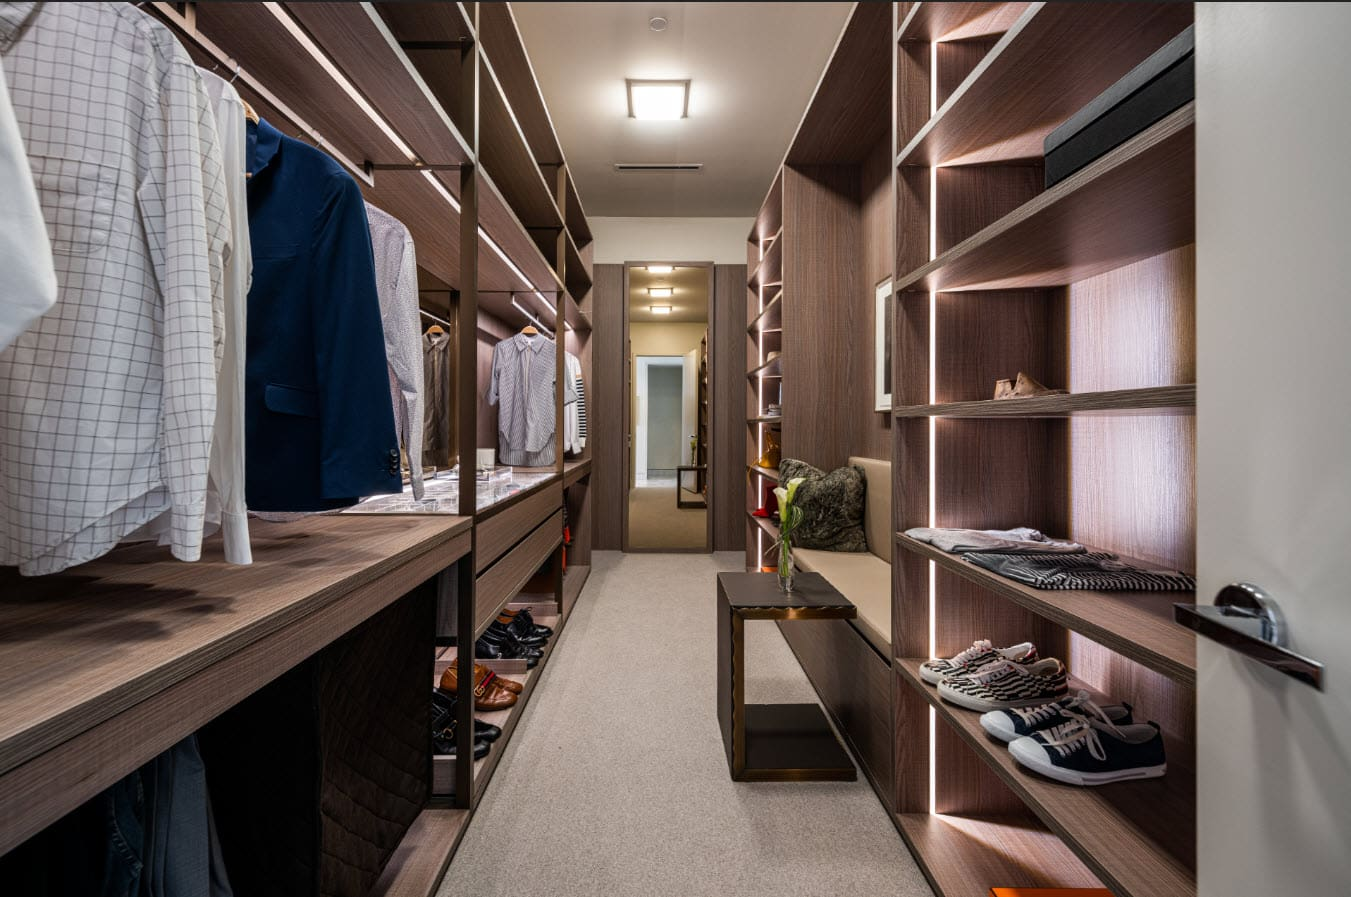 luxury walk-in closet designed by eggersmann and custom manufactured by schmalenbach for hall arts residences in dallas texas